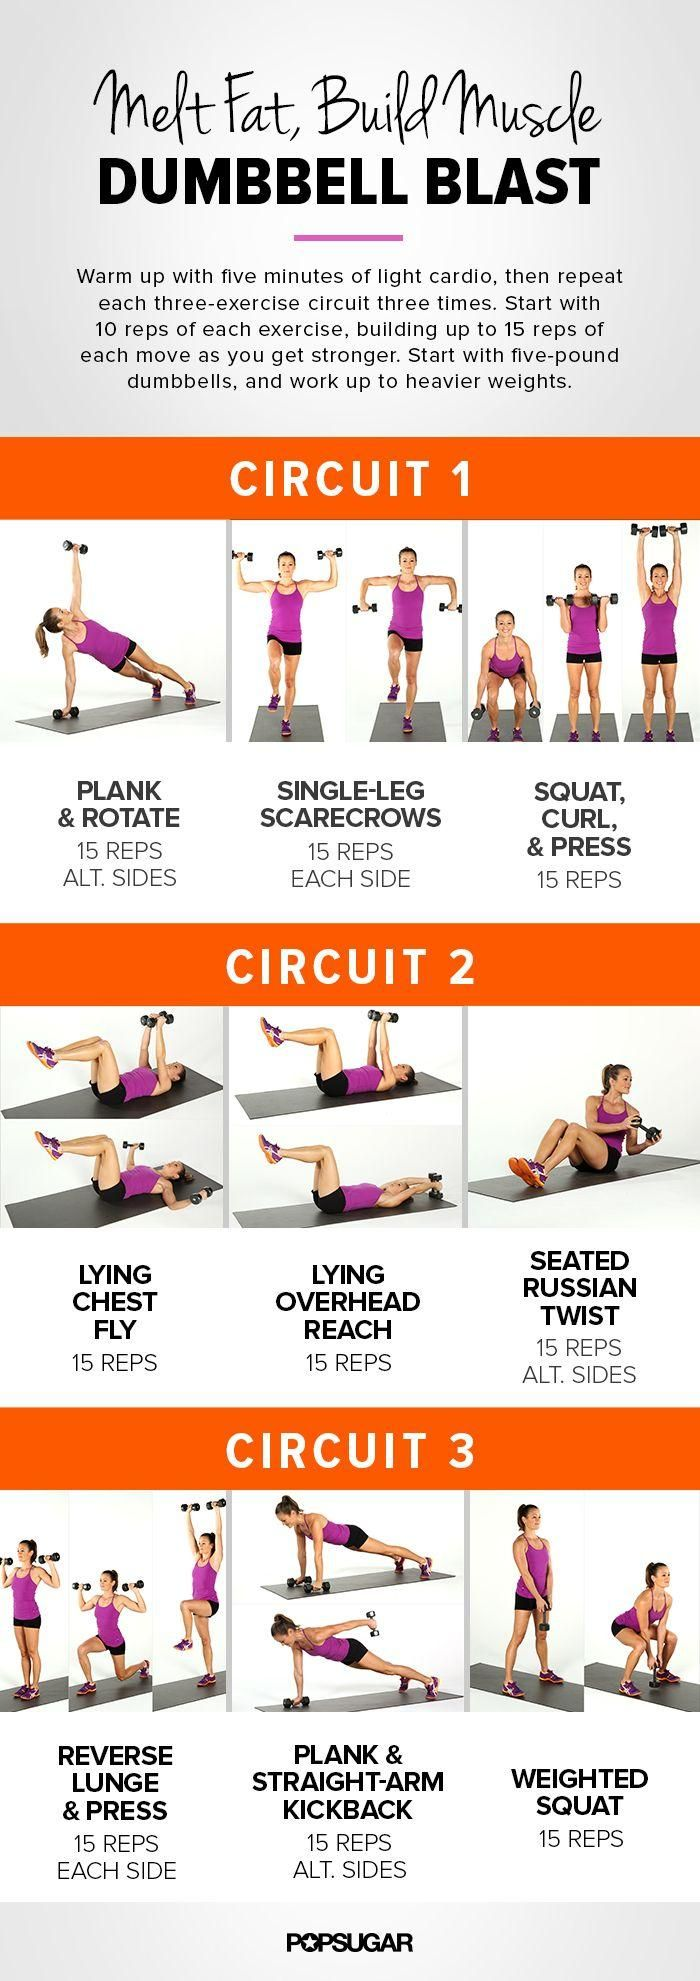 Dumbbell Blast Workout // melt fat, build muscle #freeweights #strong #fitness Check out Facebook: www.facebook.com/...